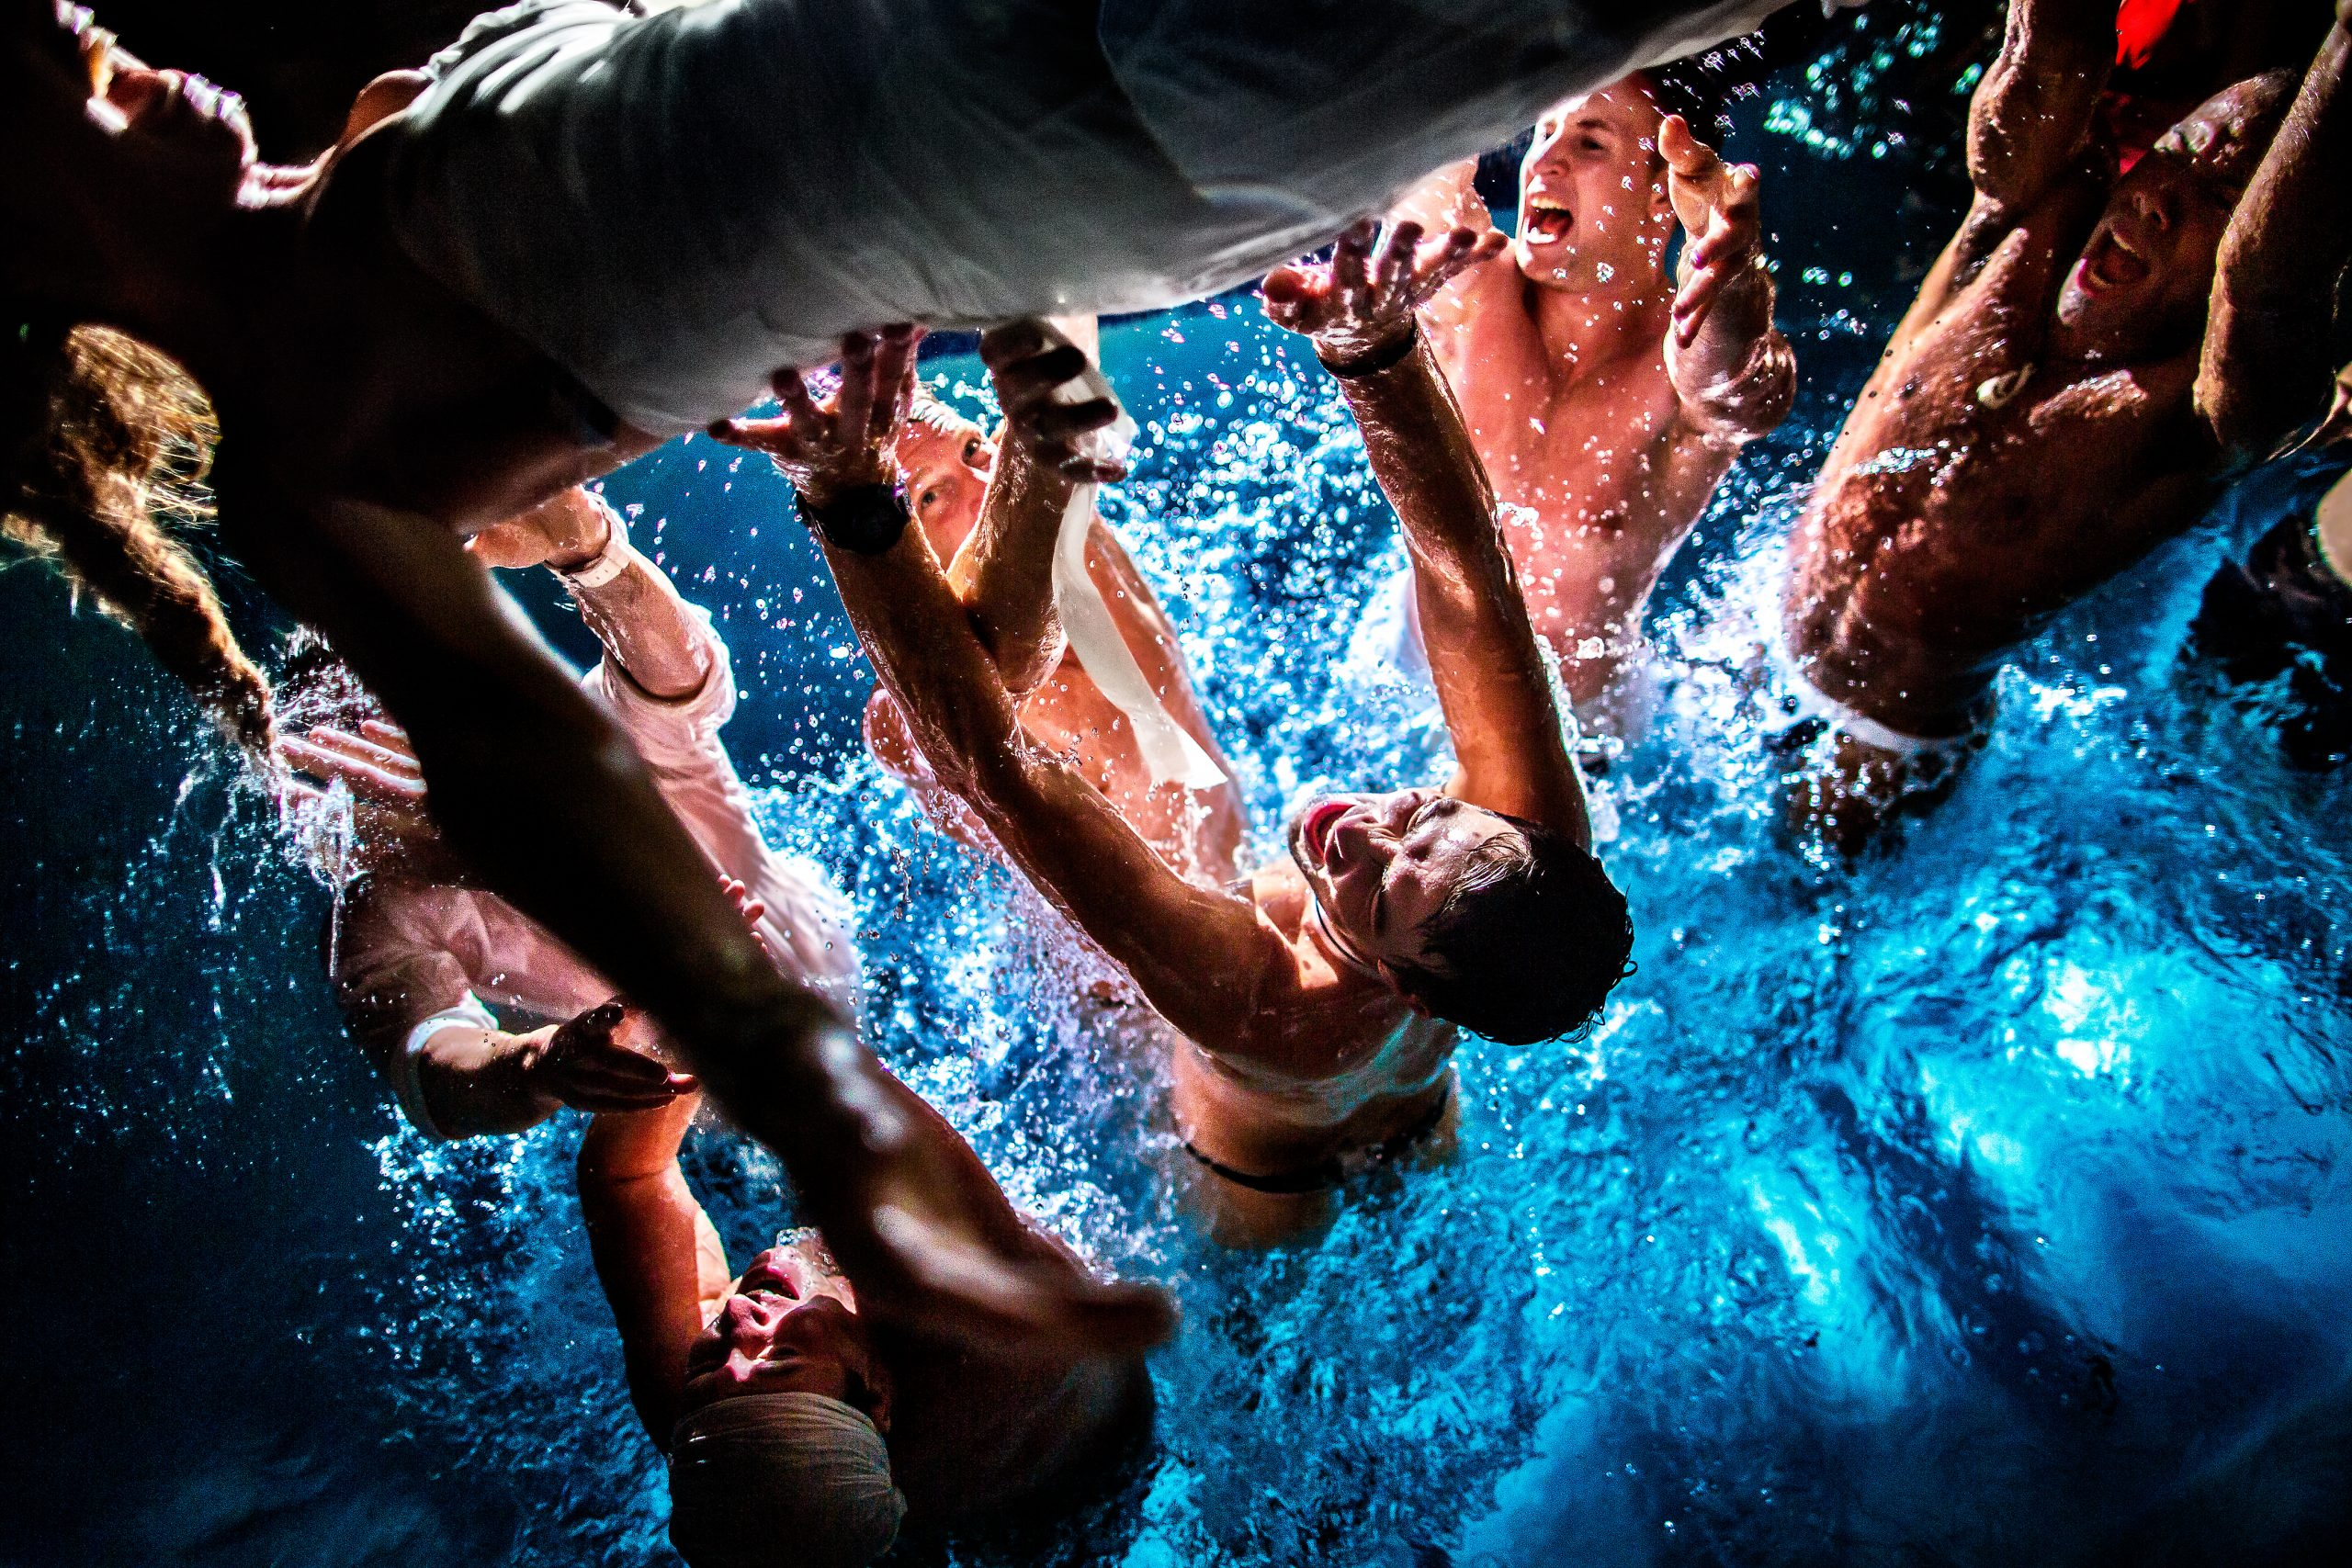 Groom and groomsmen crowd surfing the bride at night in the pool